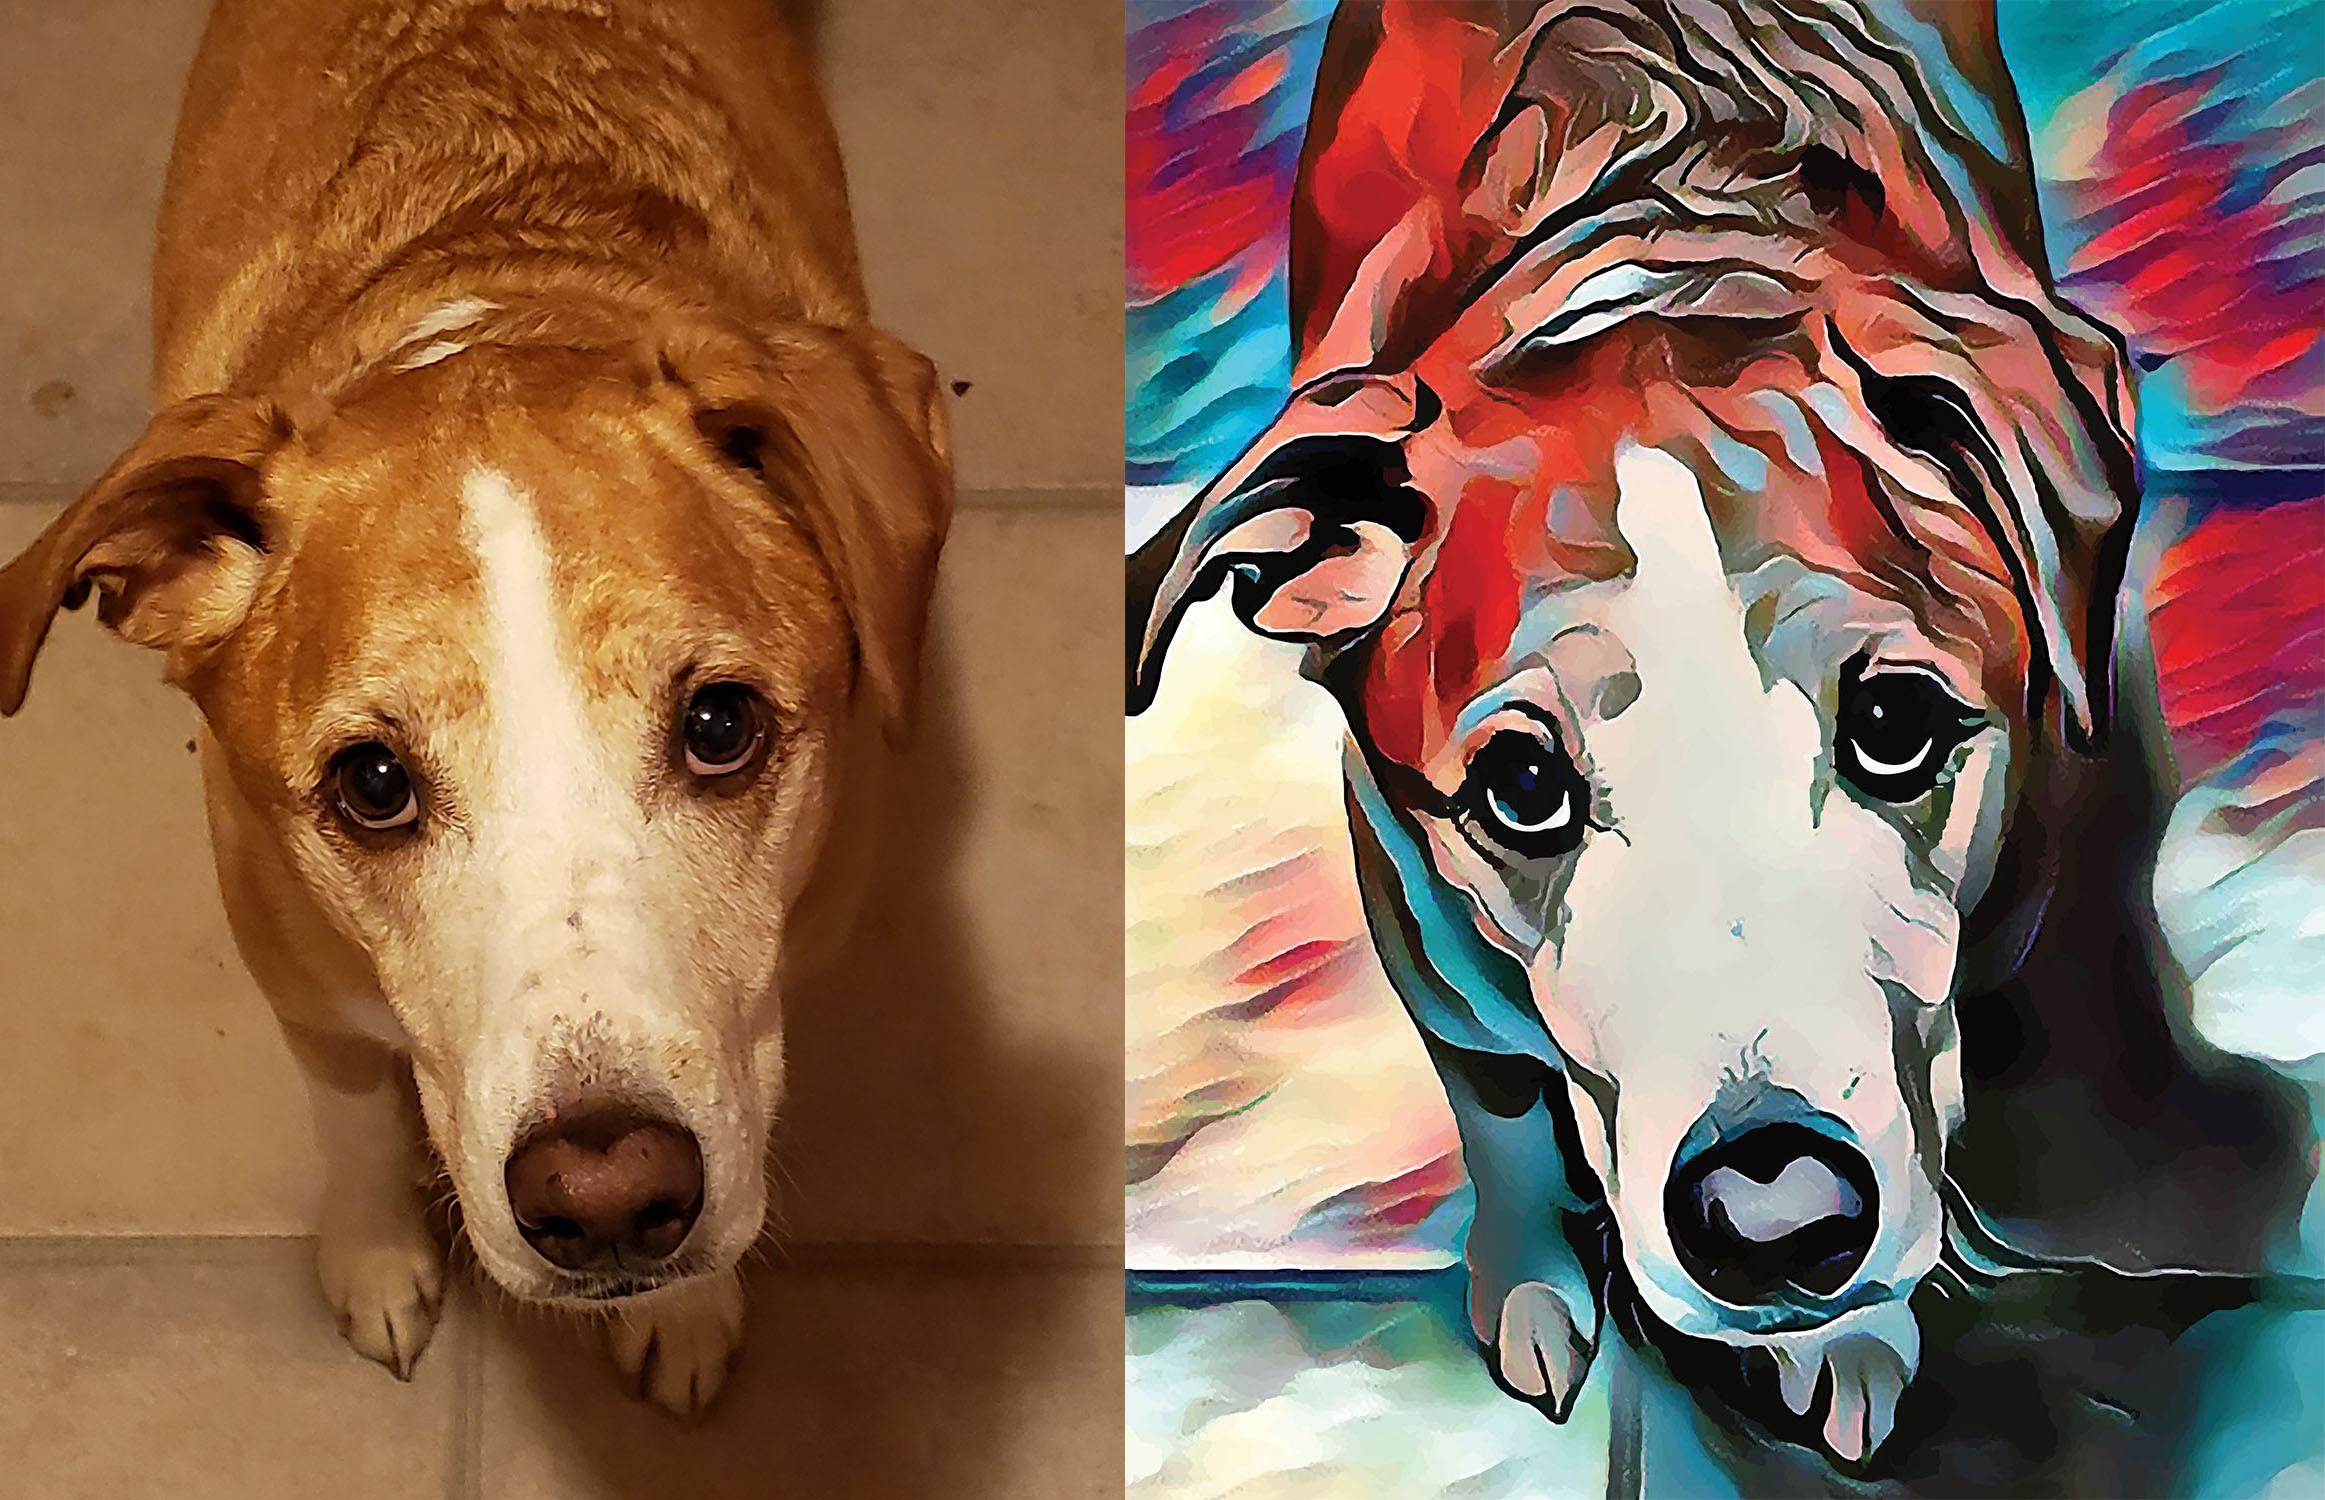 Before and after stylized image of a dog's face